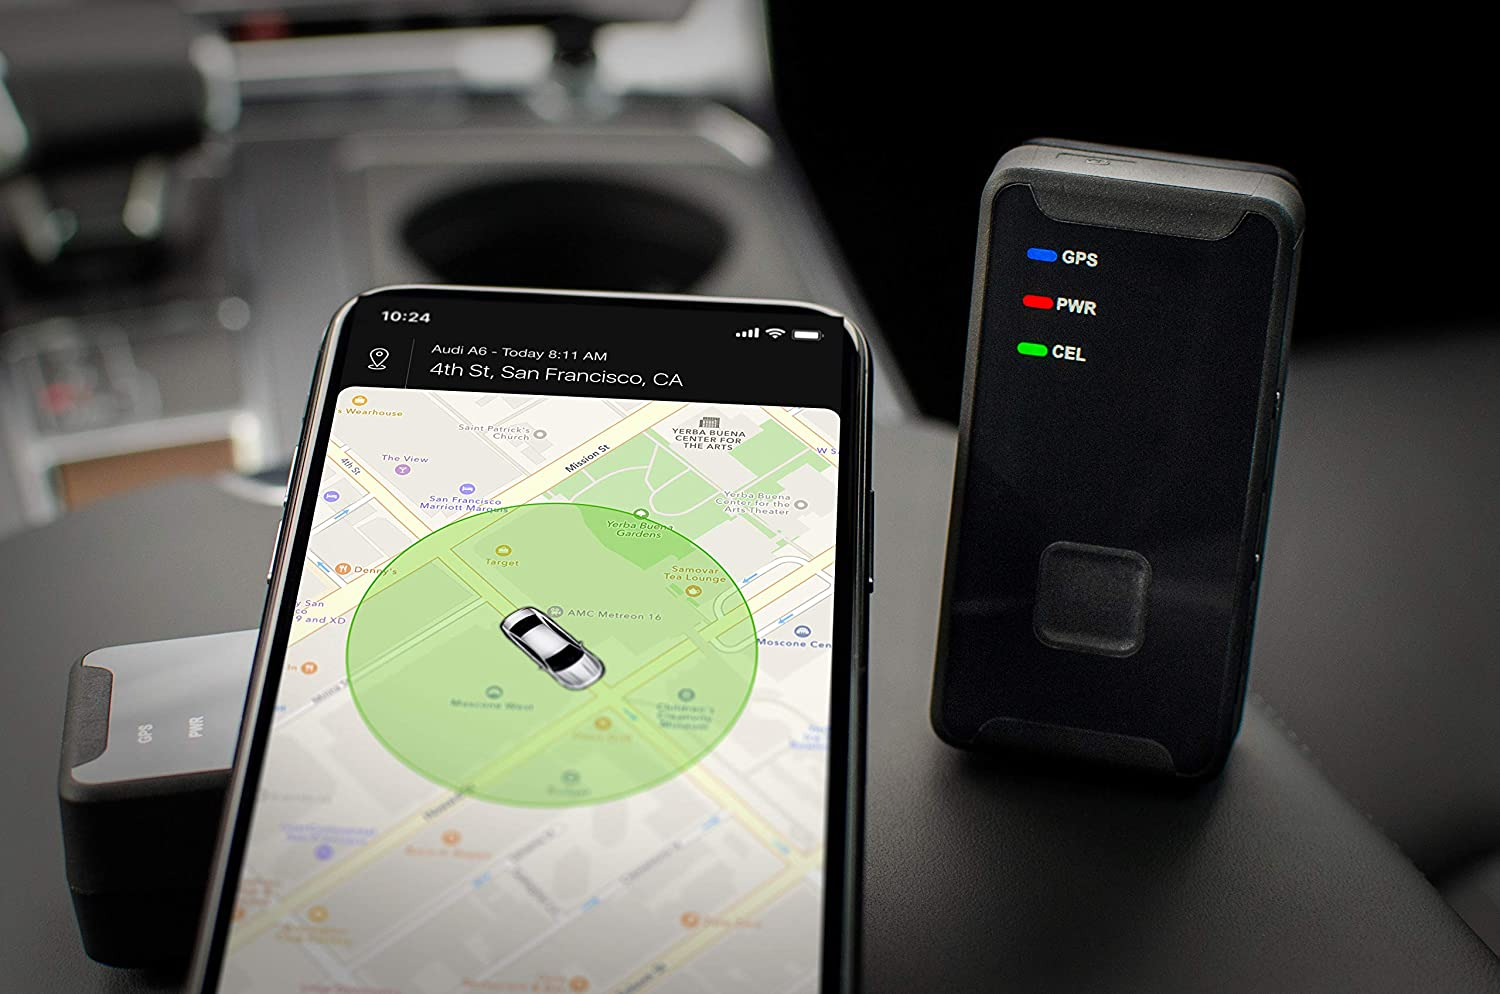 Carlock Portable – Advanced Multi-Purpose 3G GPS Tracking System. Monitor The Location of Your Trailer, Tools, Equipment, Luggage, Children. Real-Time ...